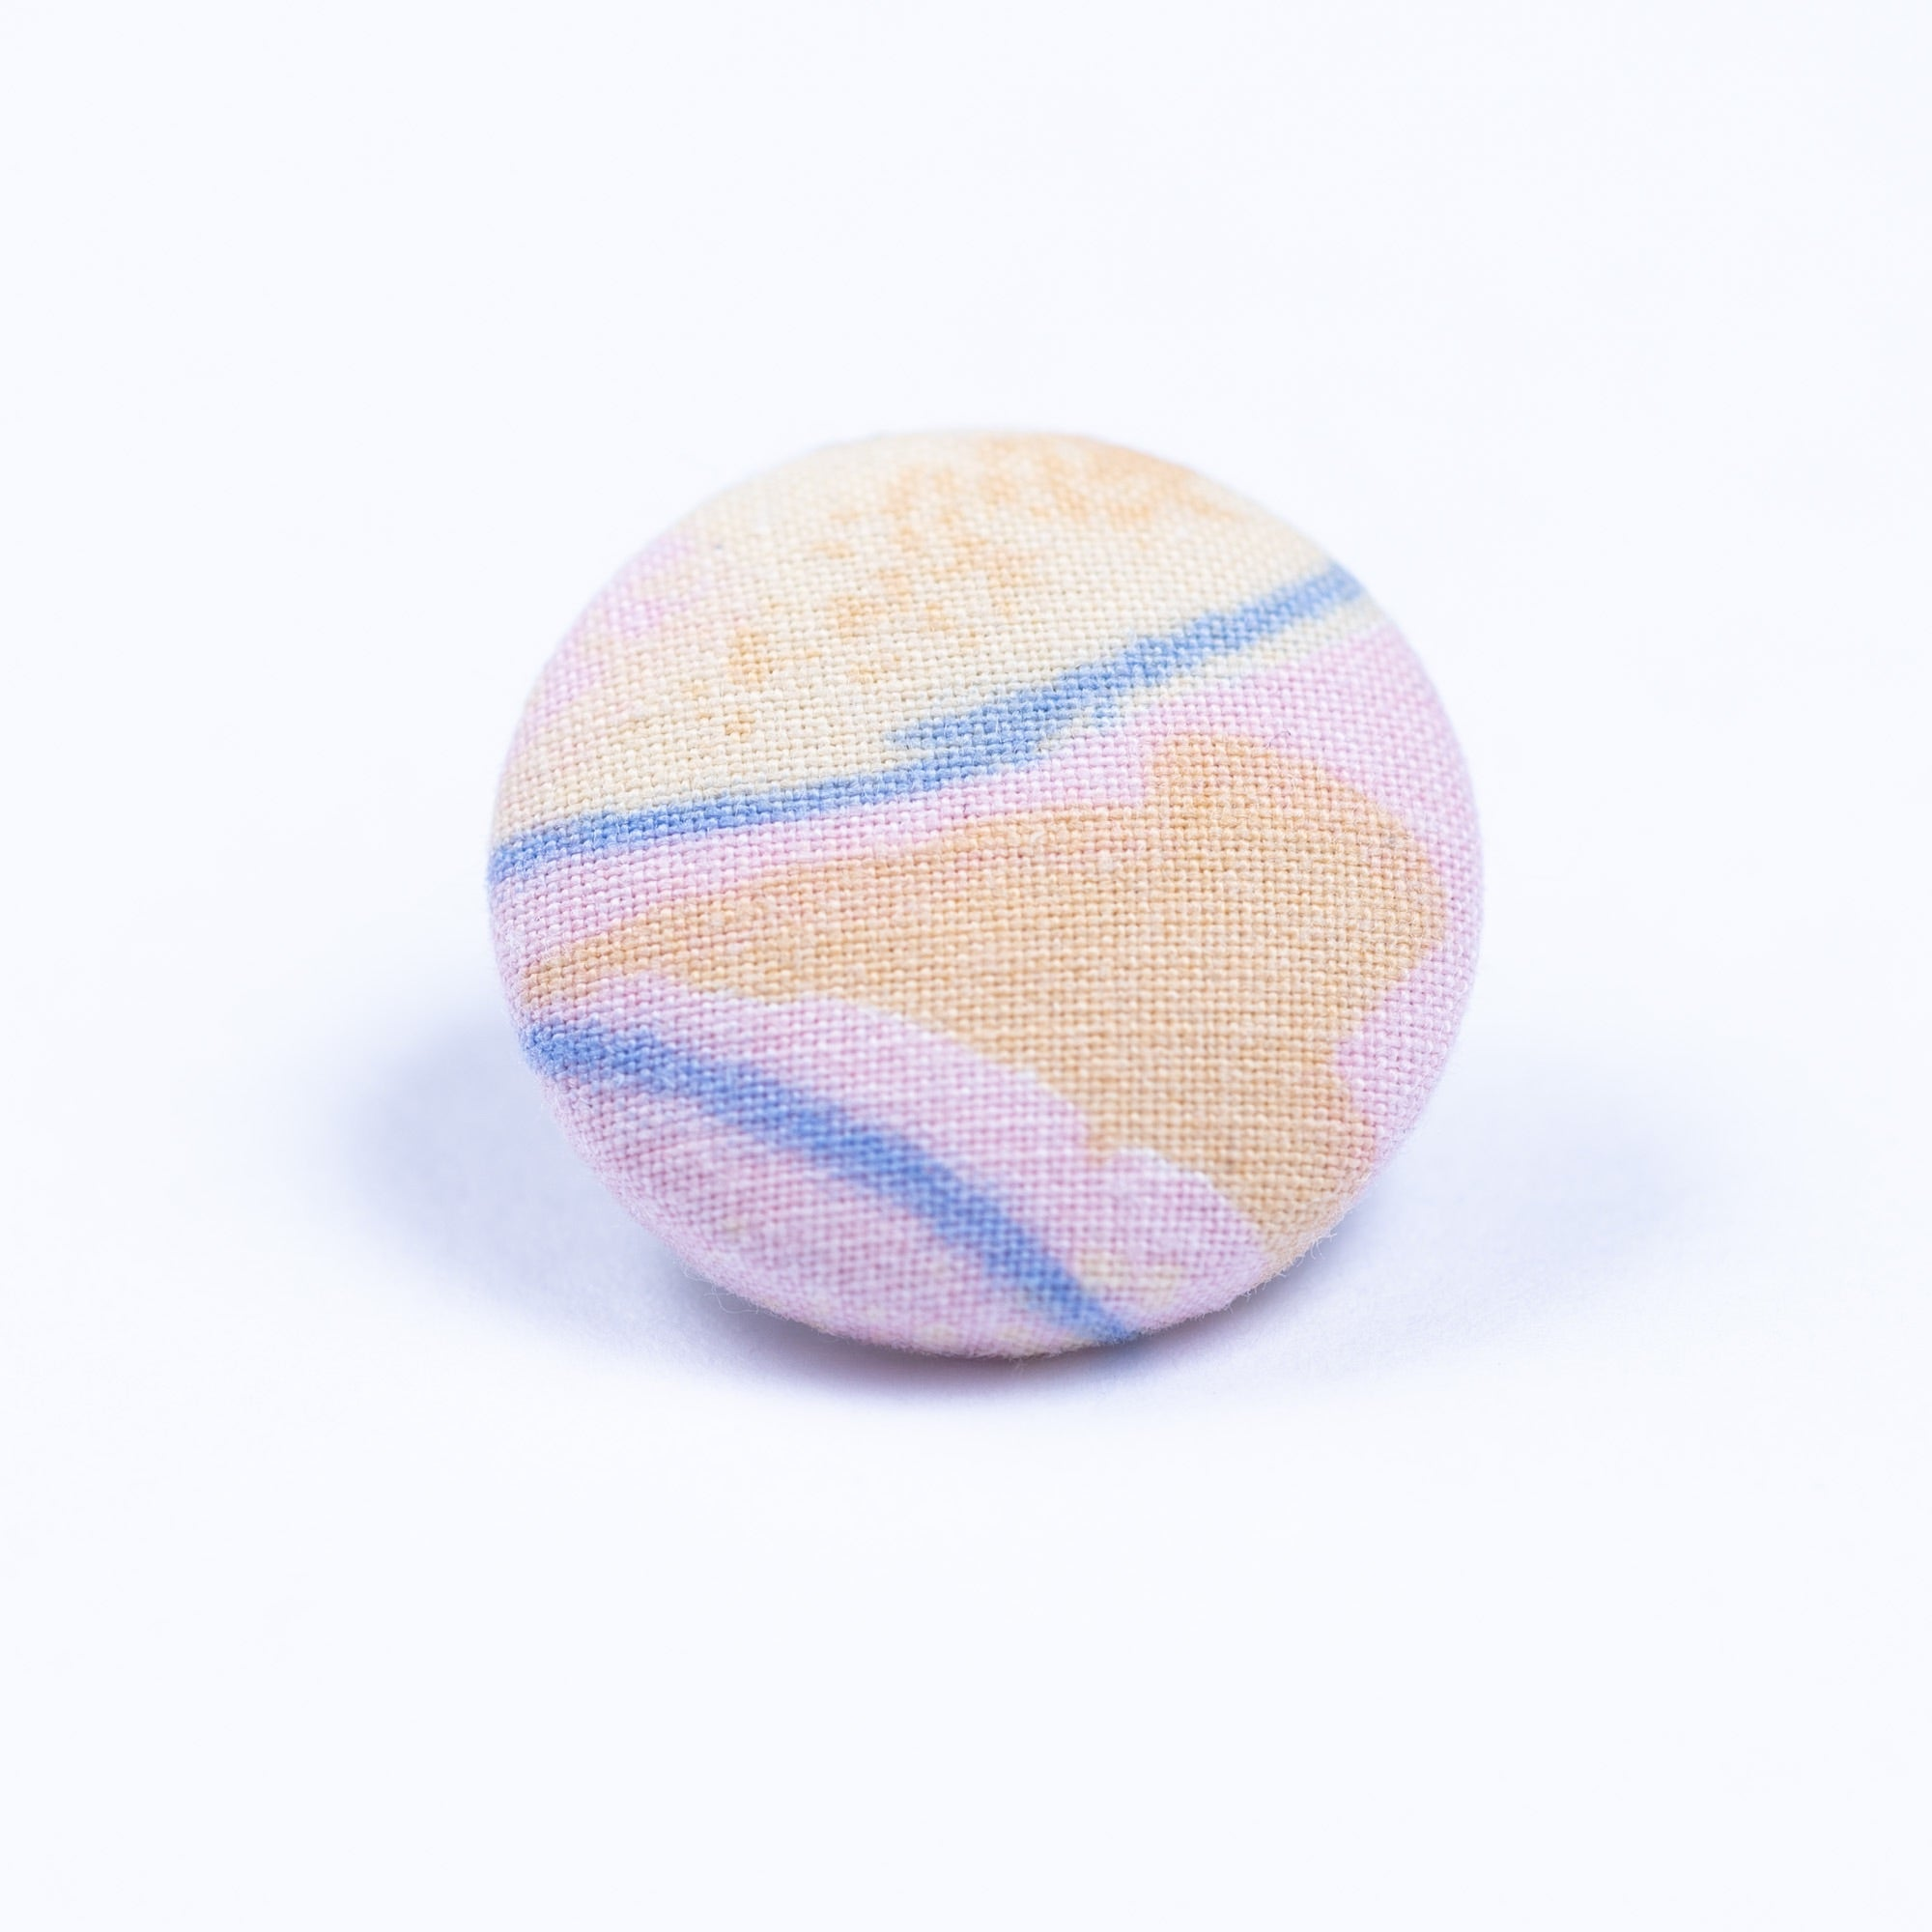 pink blue and yellow lapel pin - Oxford Square